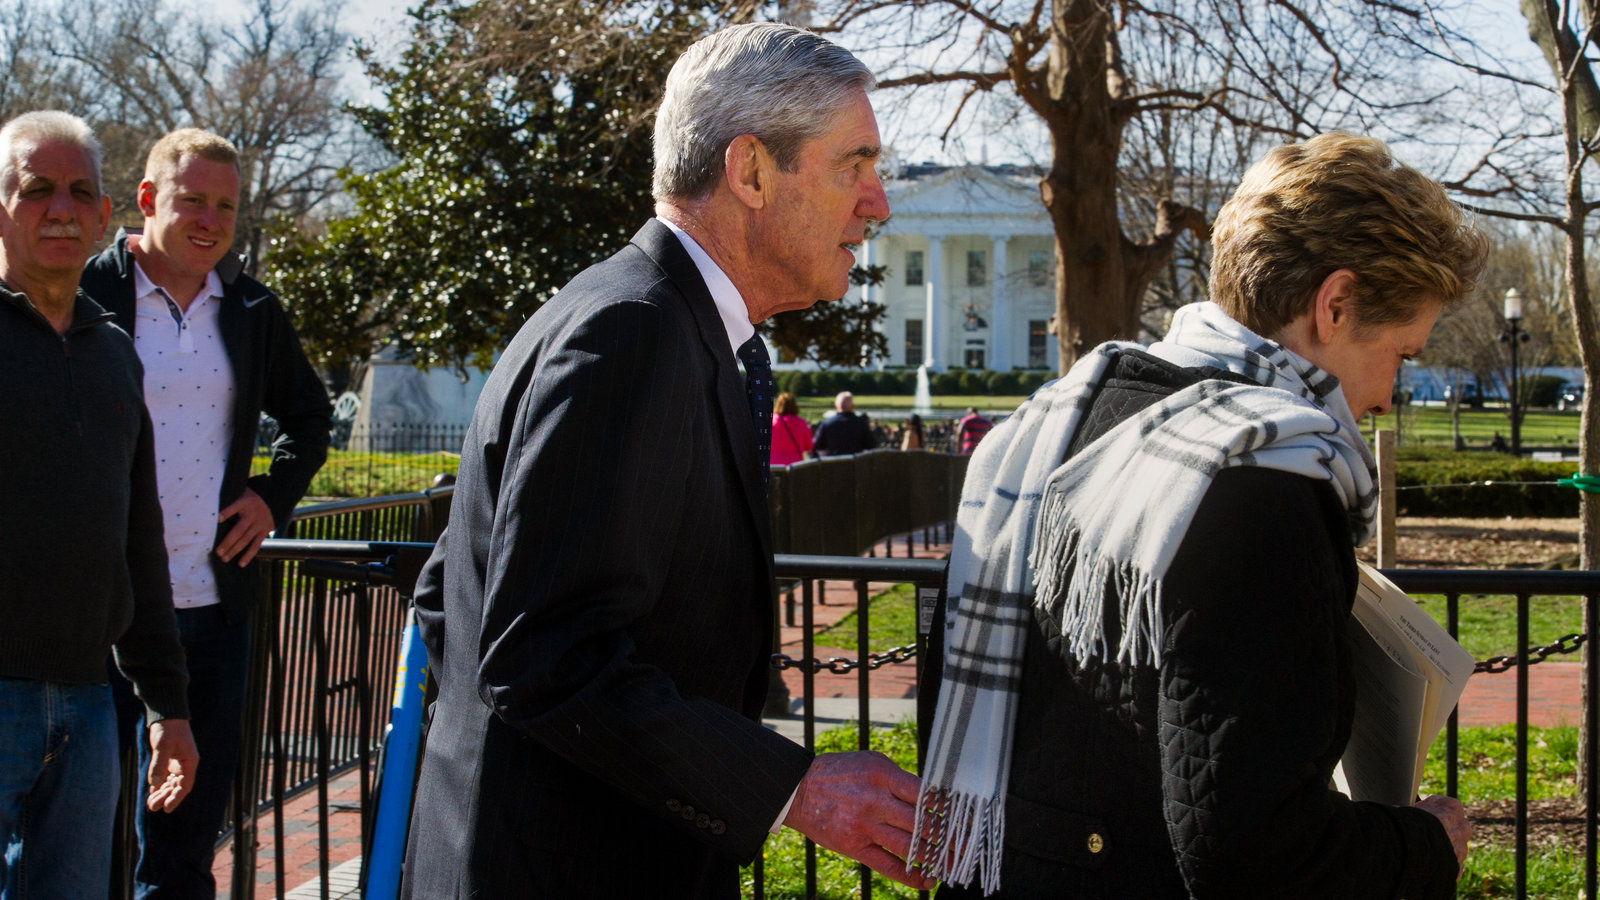 MUELLER CLOSES IN ON TRUMP, INTERVIEWS HIS MOST TRUSTED FRIEND